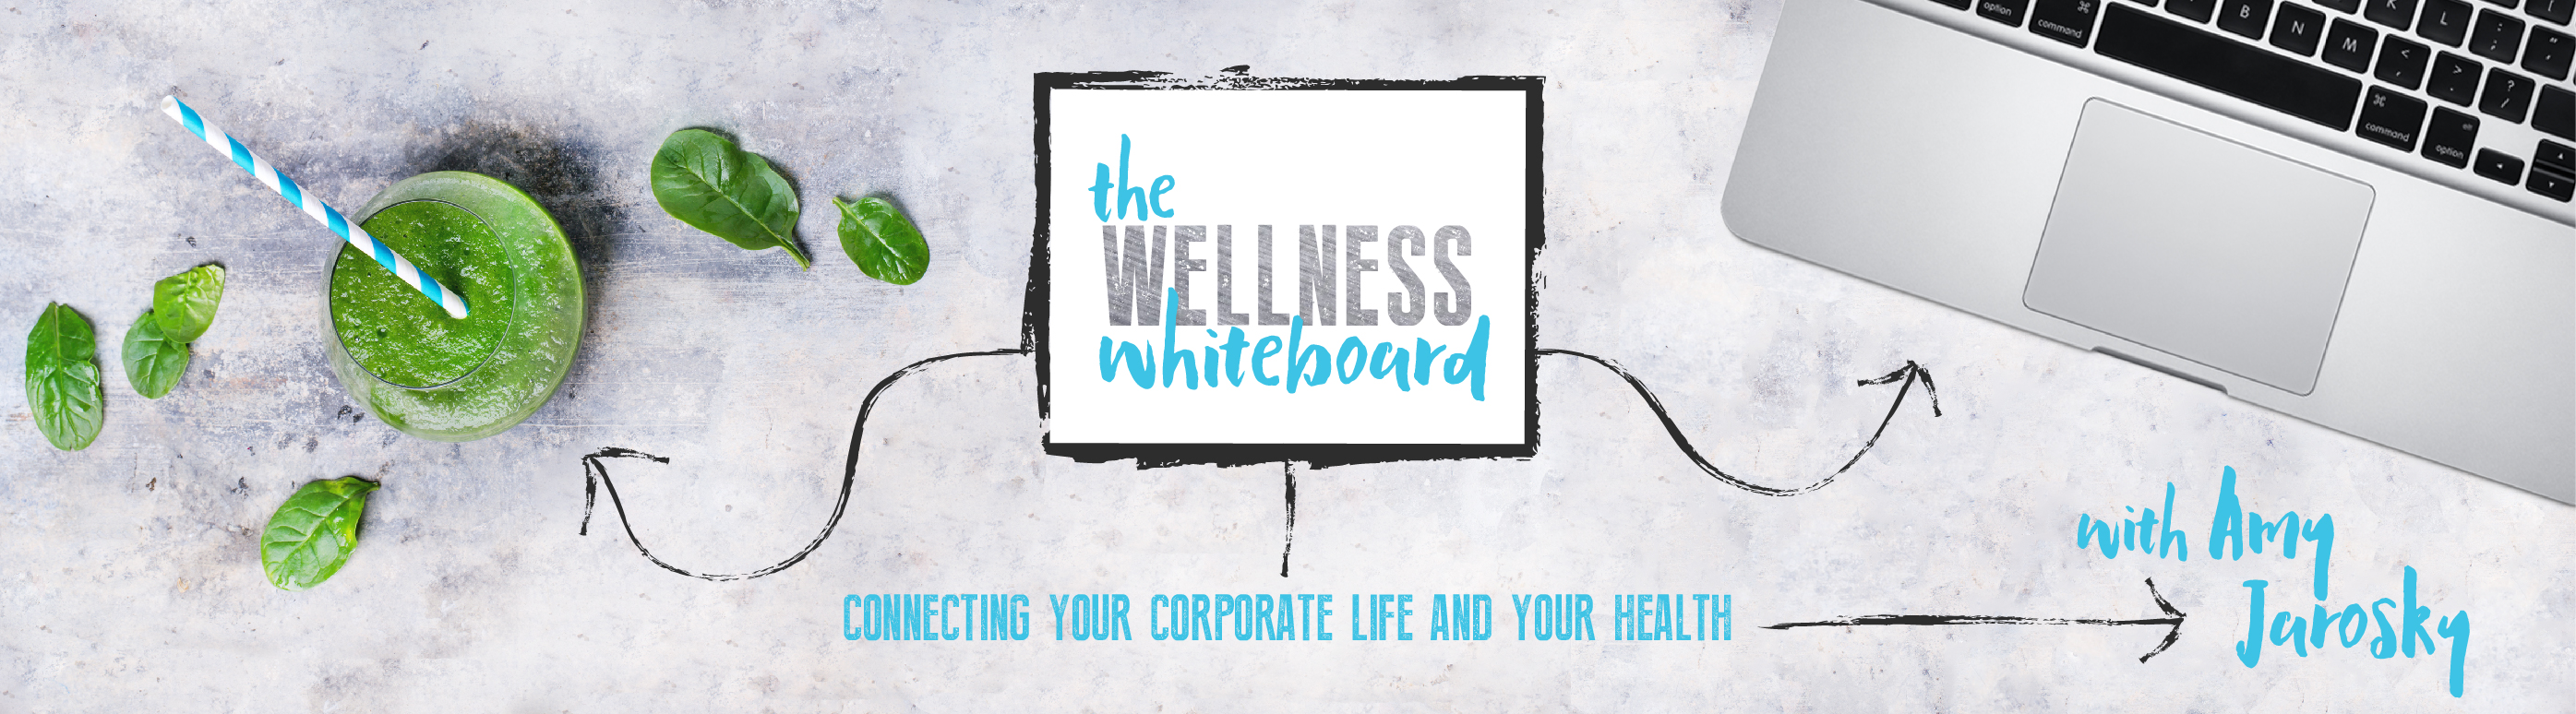 wellness whiteboard sales page-19